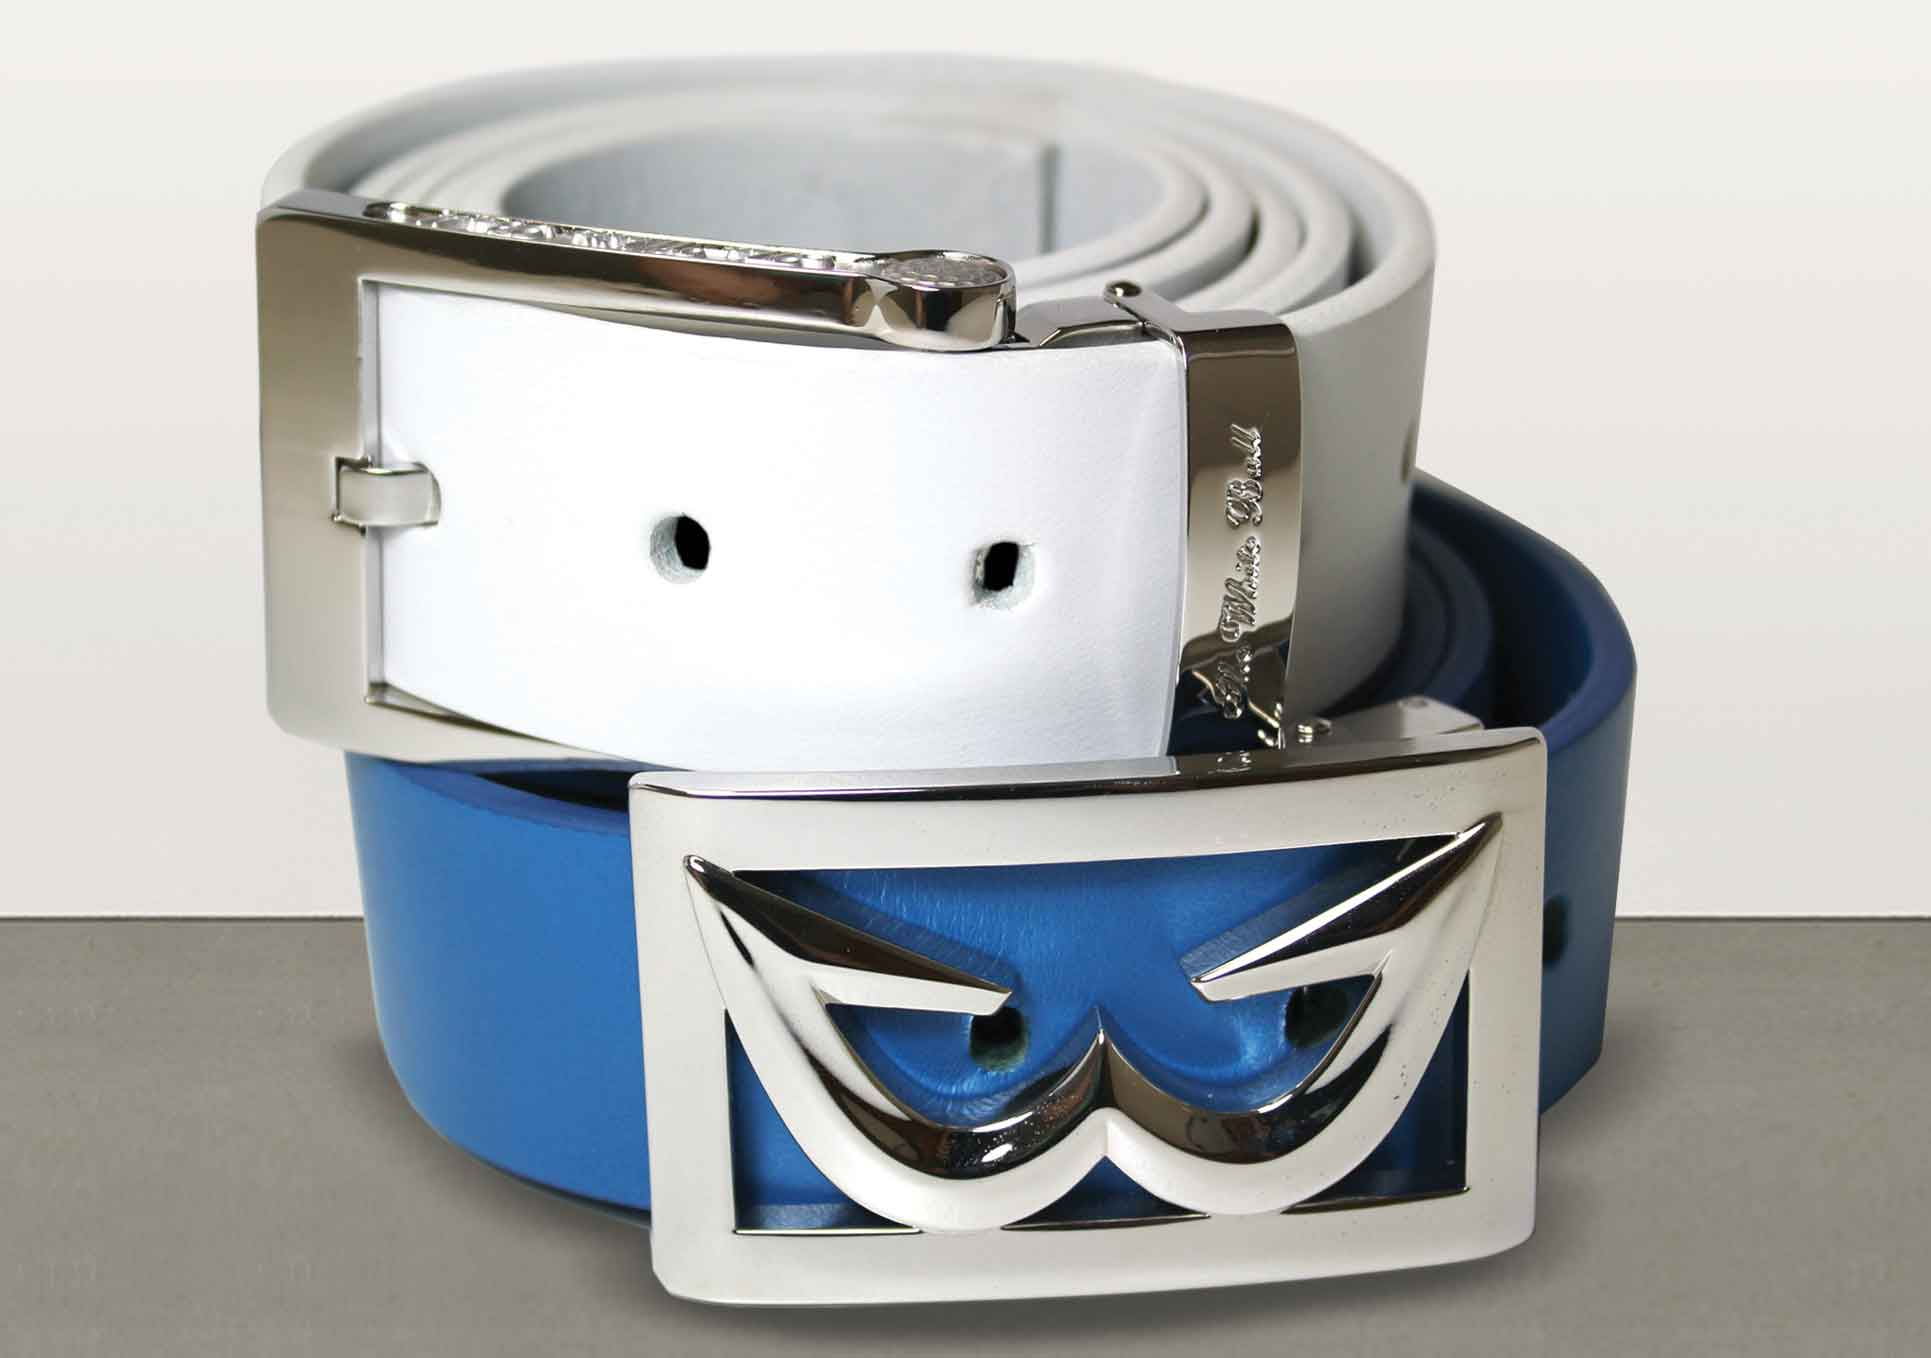 The White Ball Sports ZenR Leather Belt